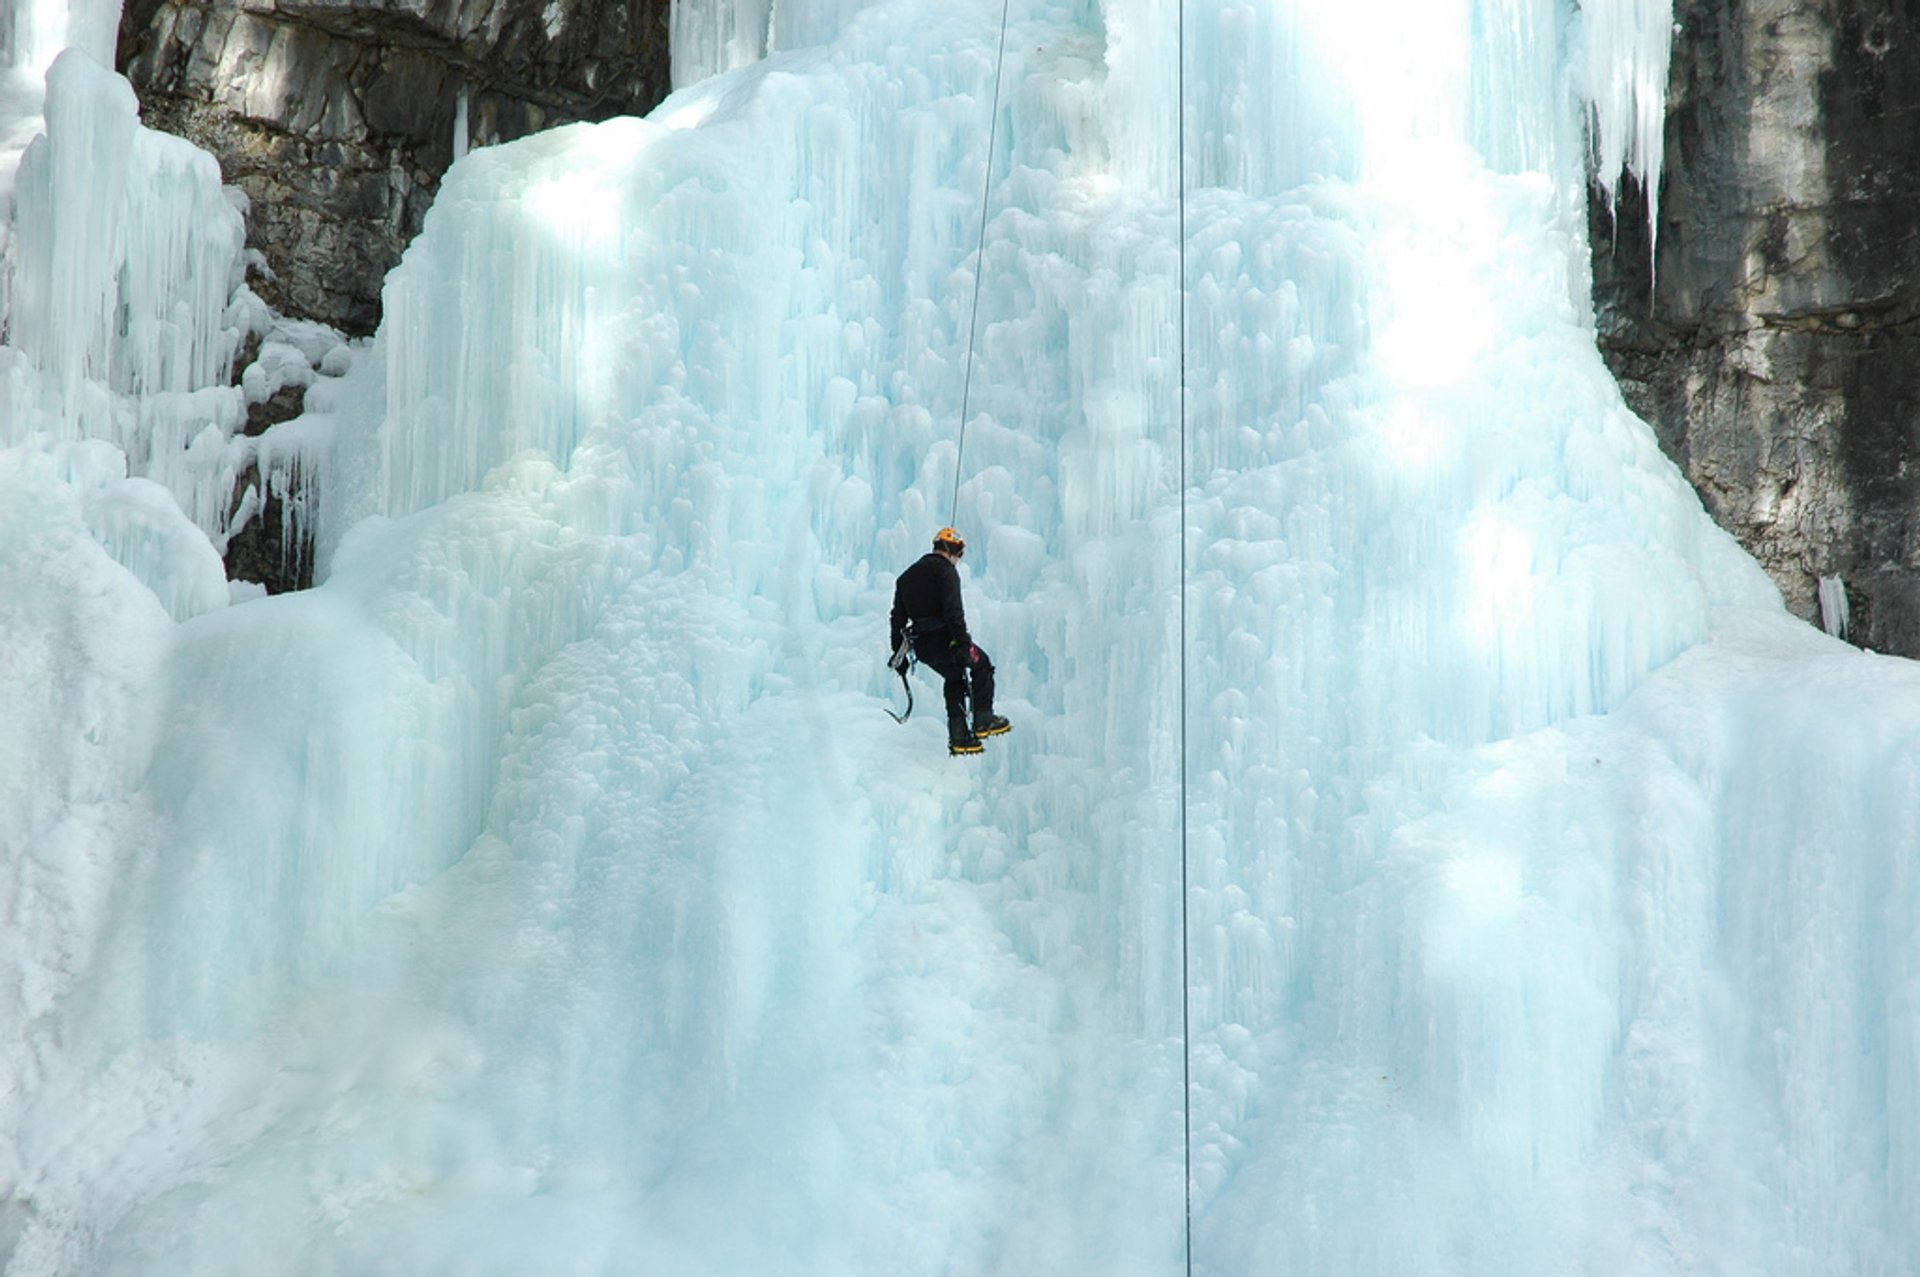 Johnston Canyon Ice Walk & Climb in Banff & Jasper National Parks - Best Season 2020